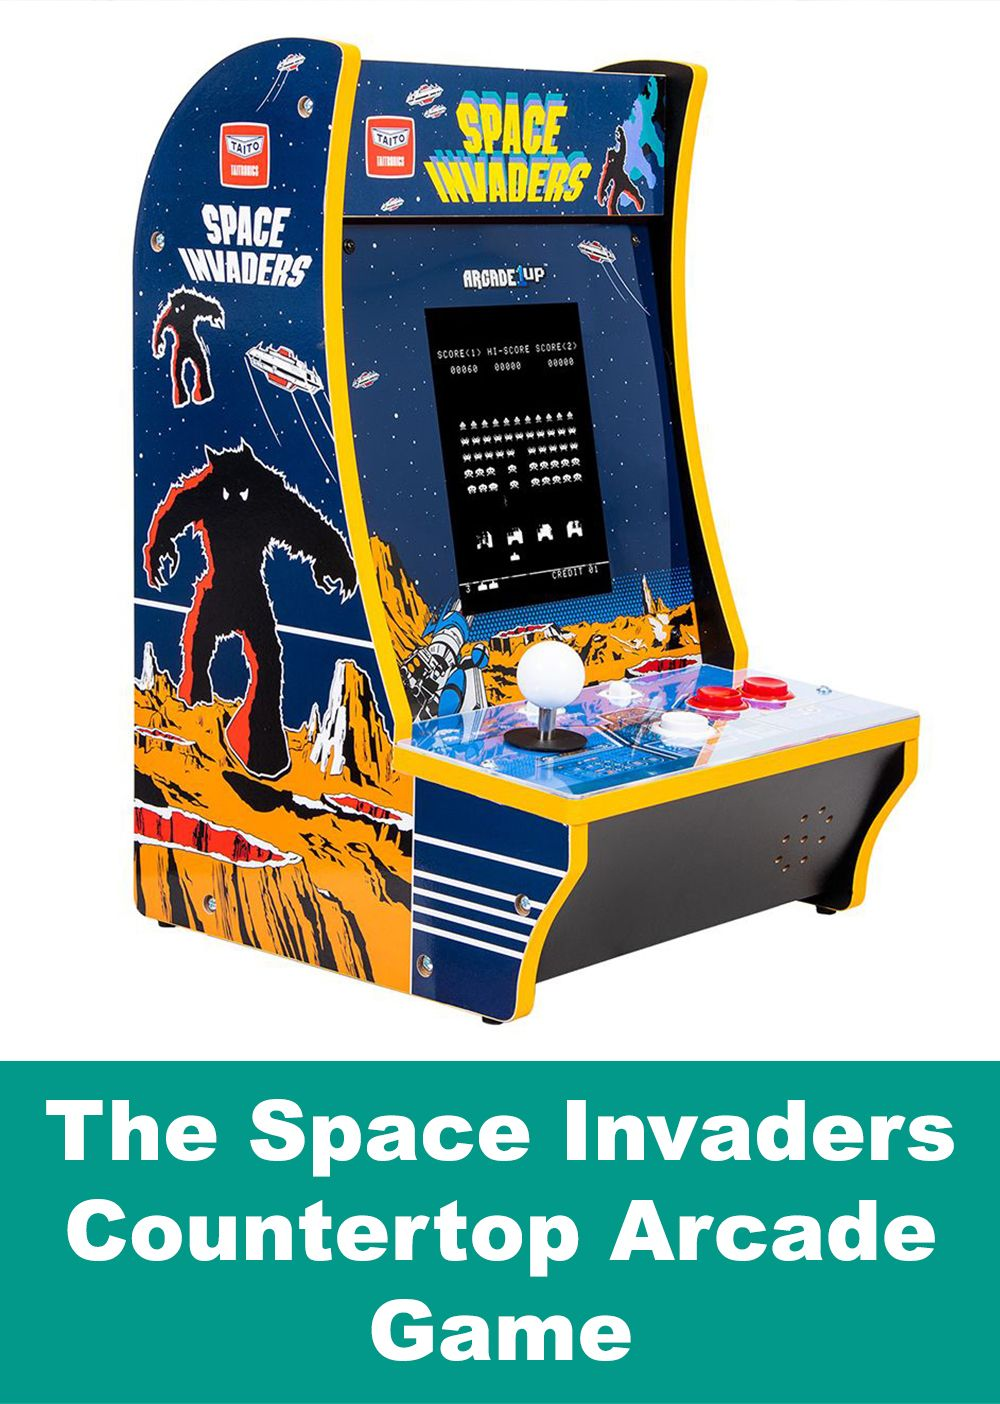 This Is The Countertop Arcade Game That Brings To Life One Of